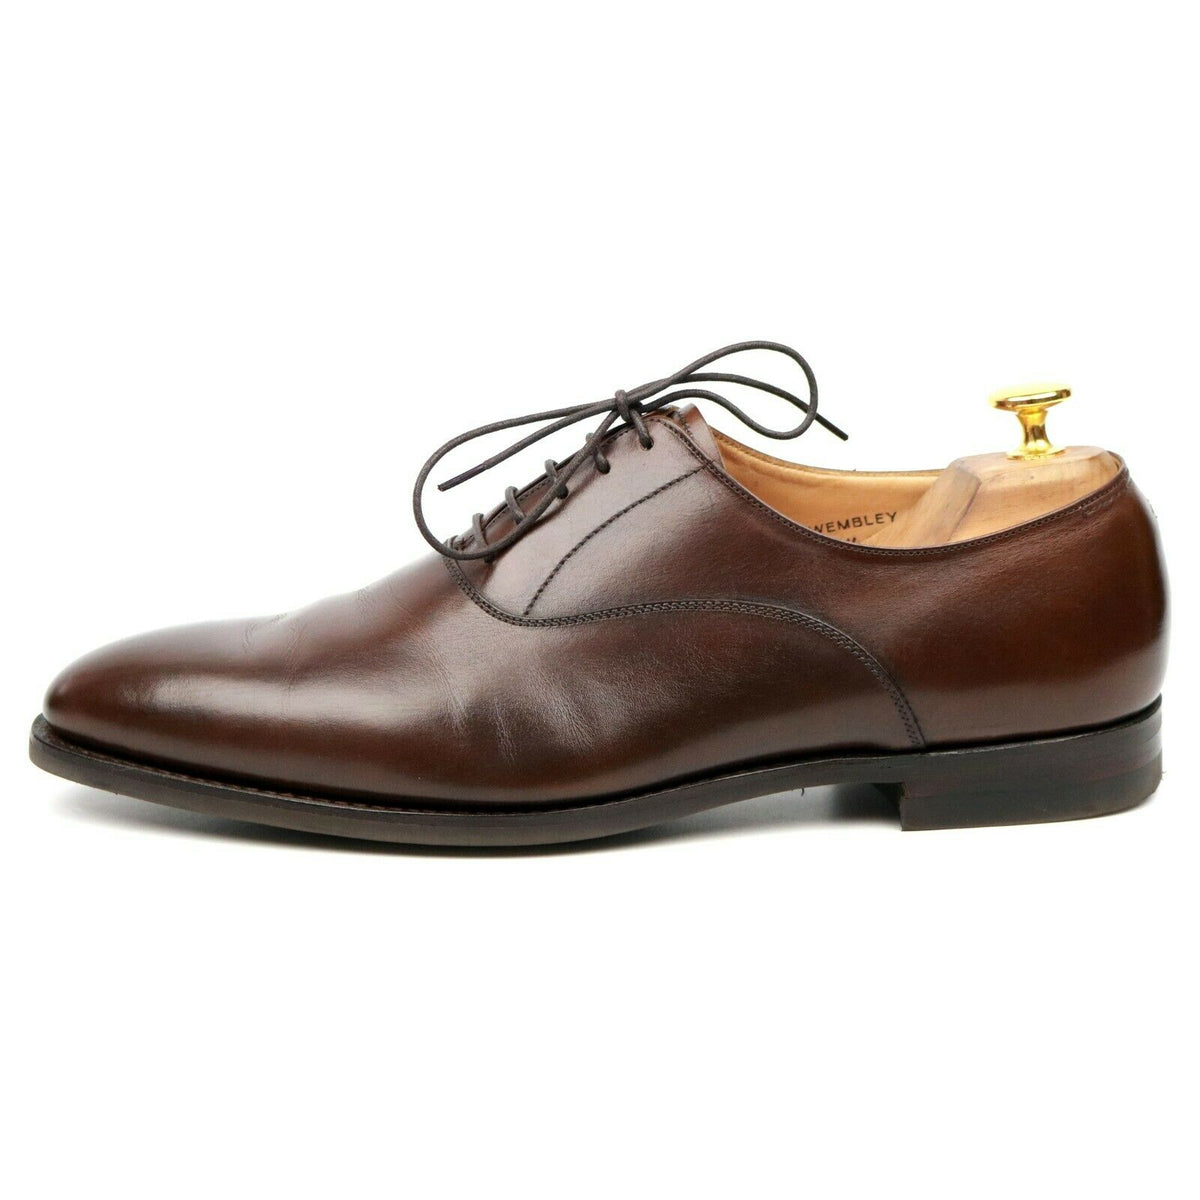 Crockett & Jones 'Wembley' Brown Oxford UK 8.5 E